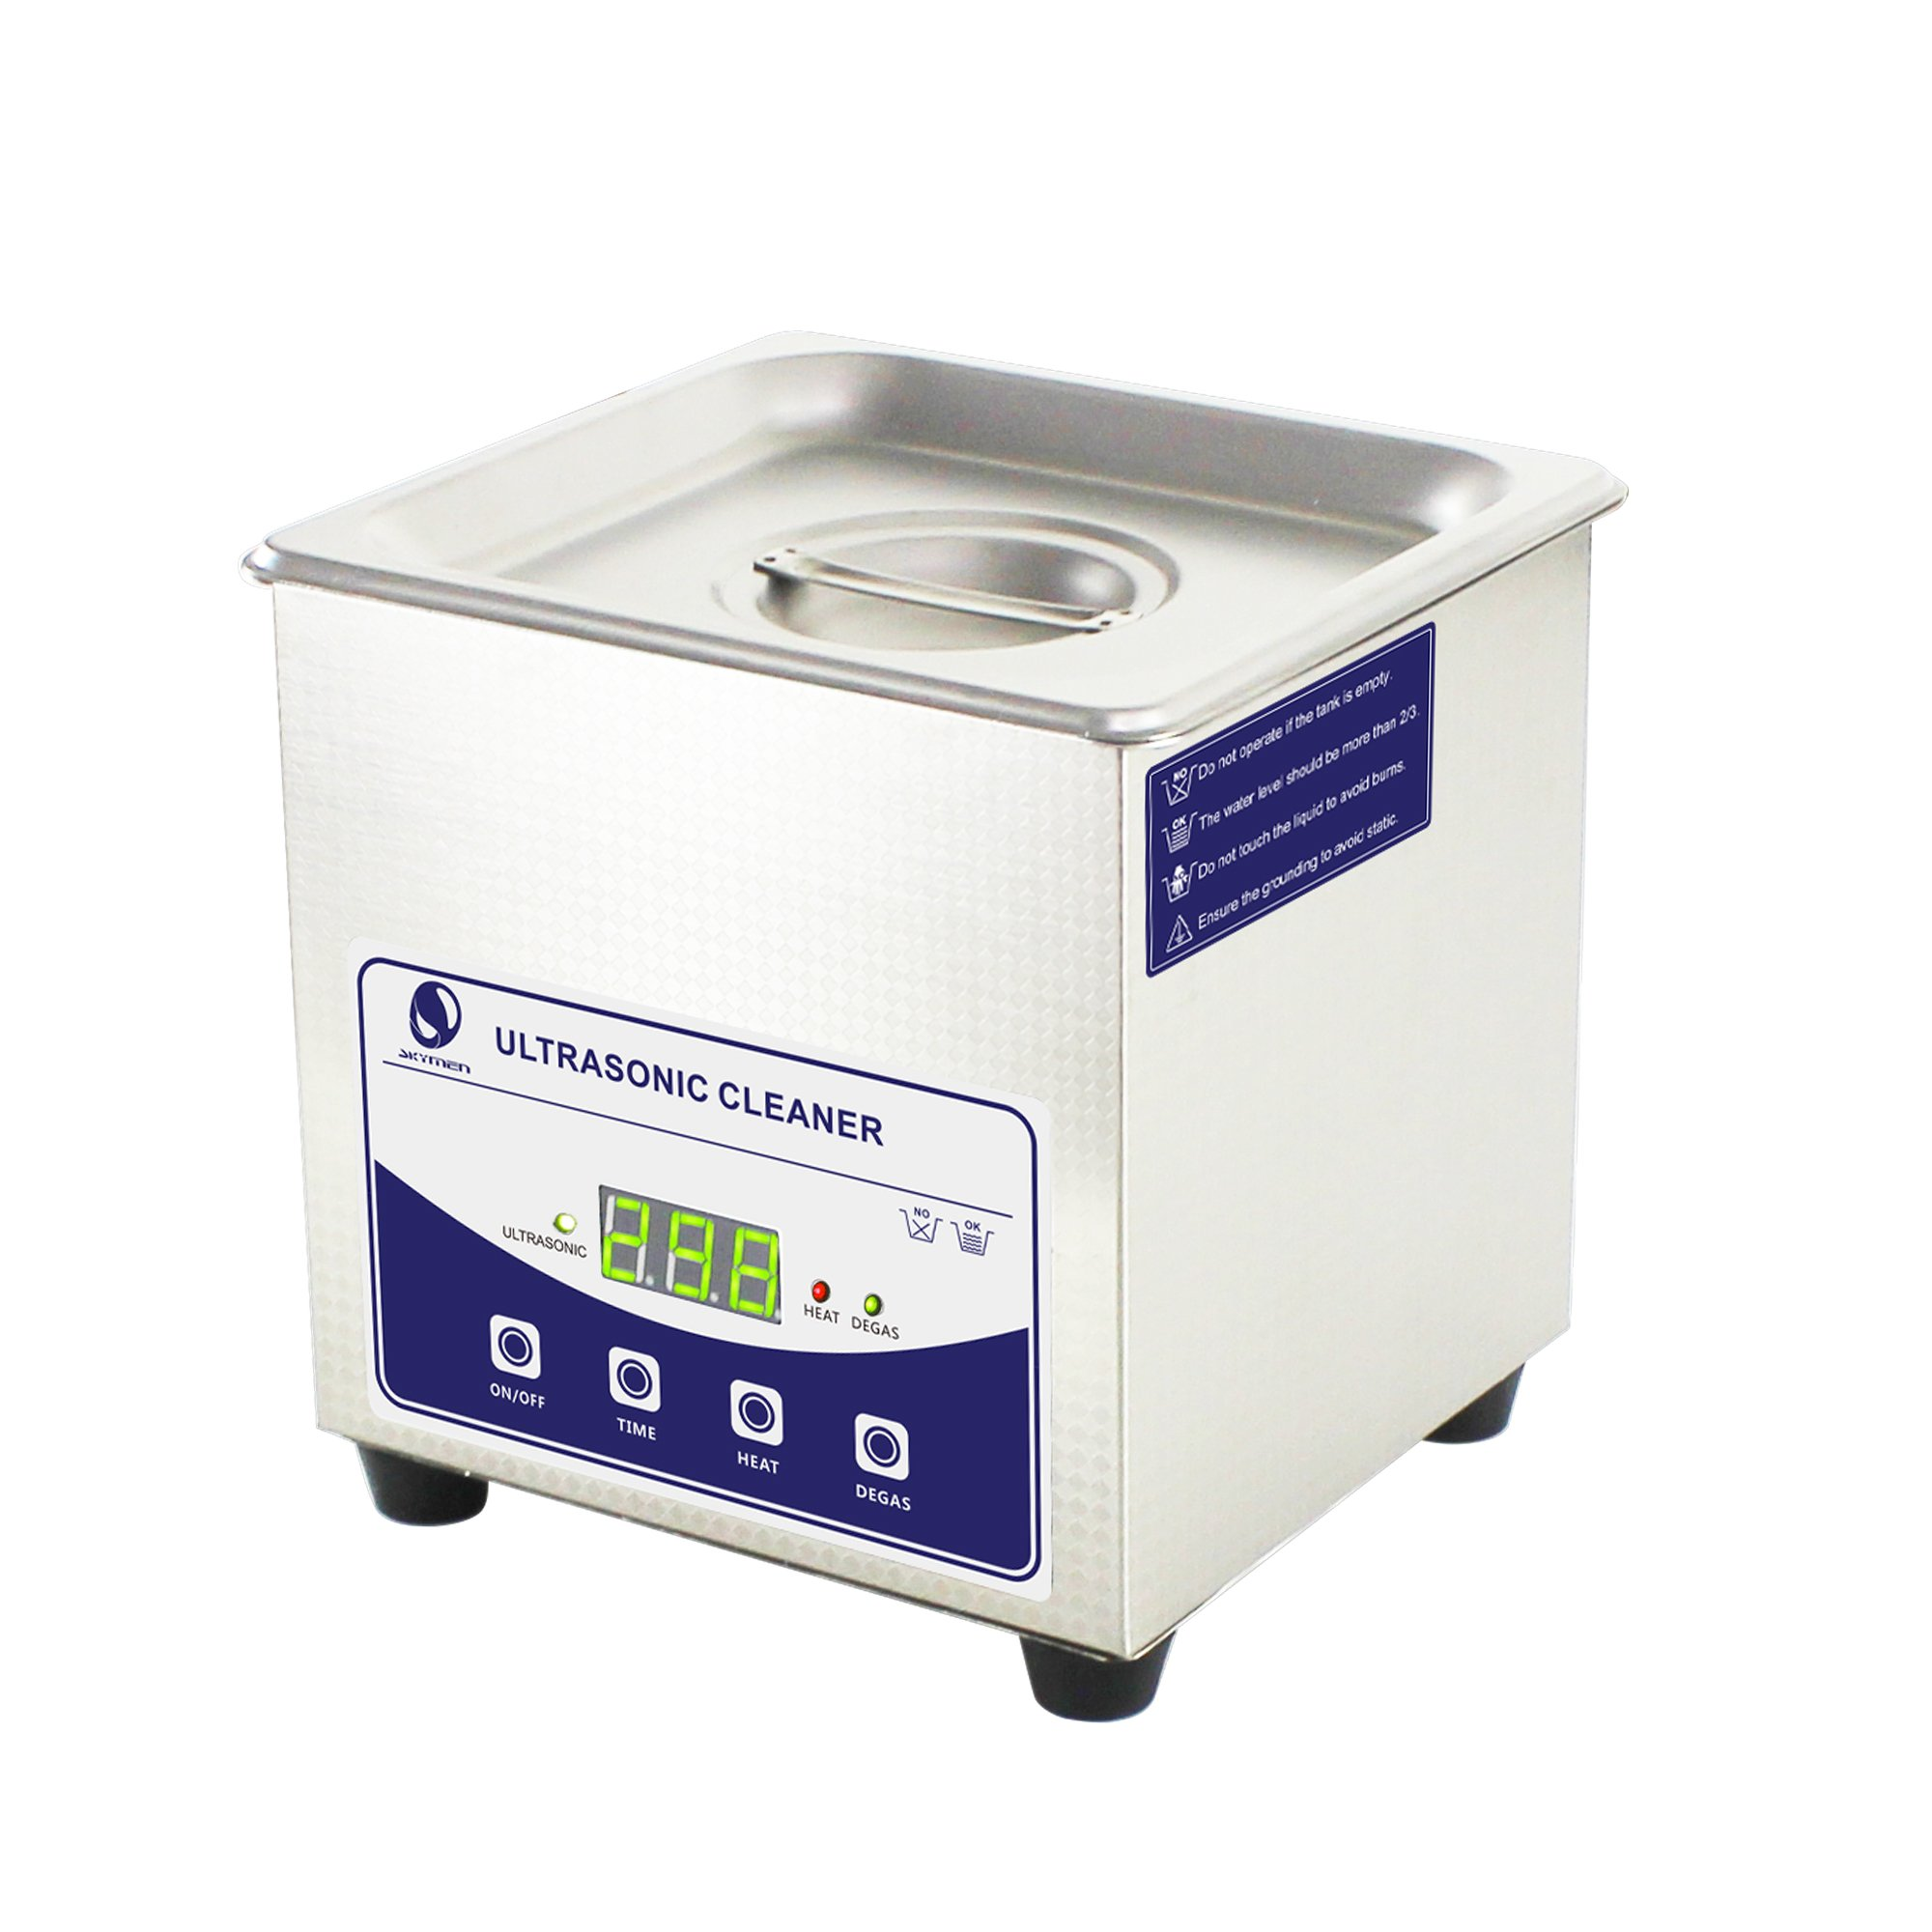 Skymen Ultrasonic jewelry Cleaner 0.34gal/45.77oz for Glasses Tattoo Dental cleaning with Digital Timer/Degas/Heating